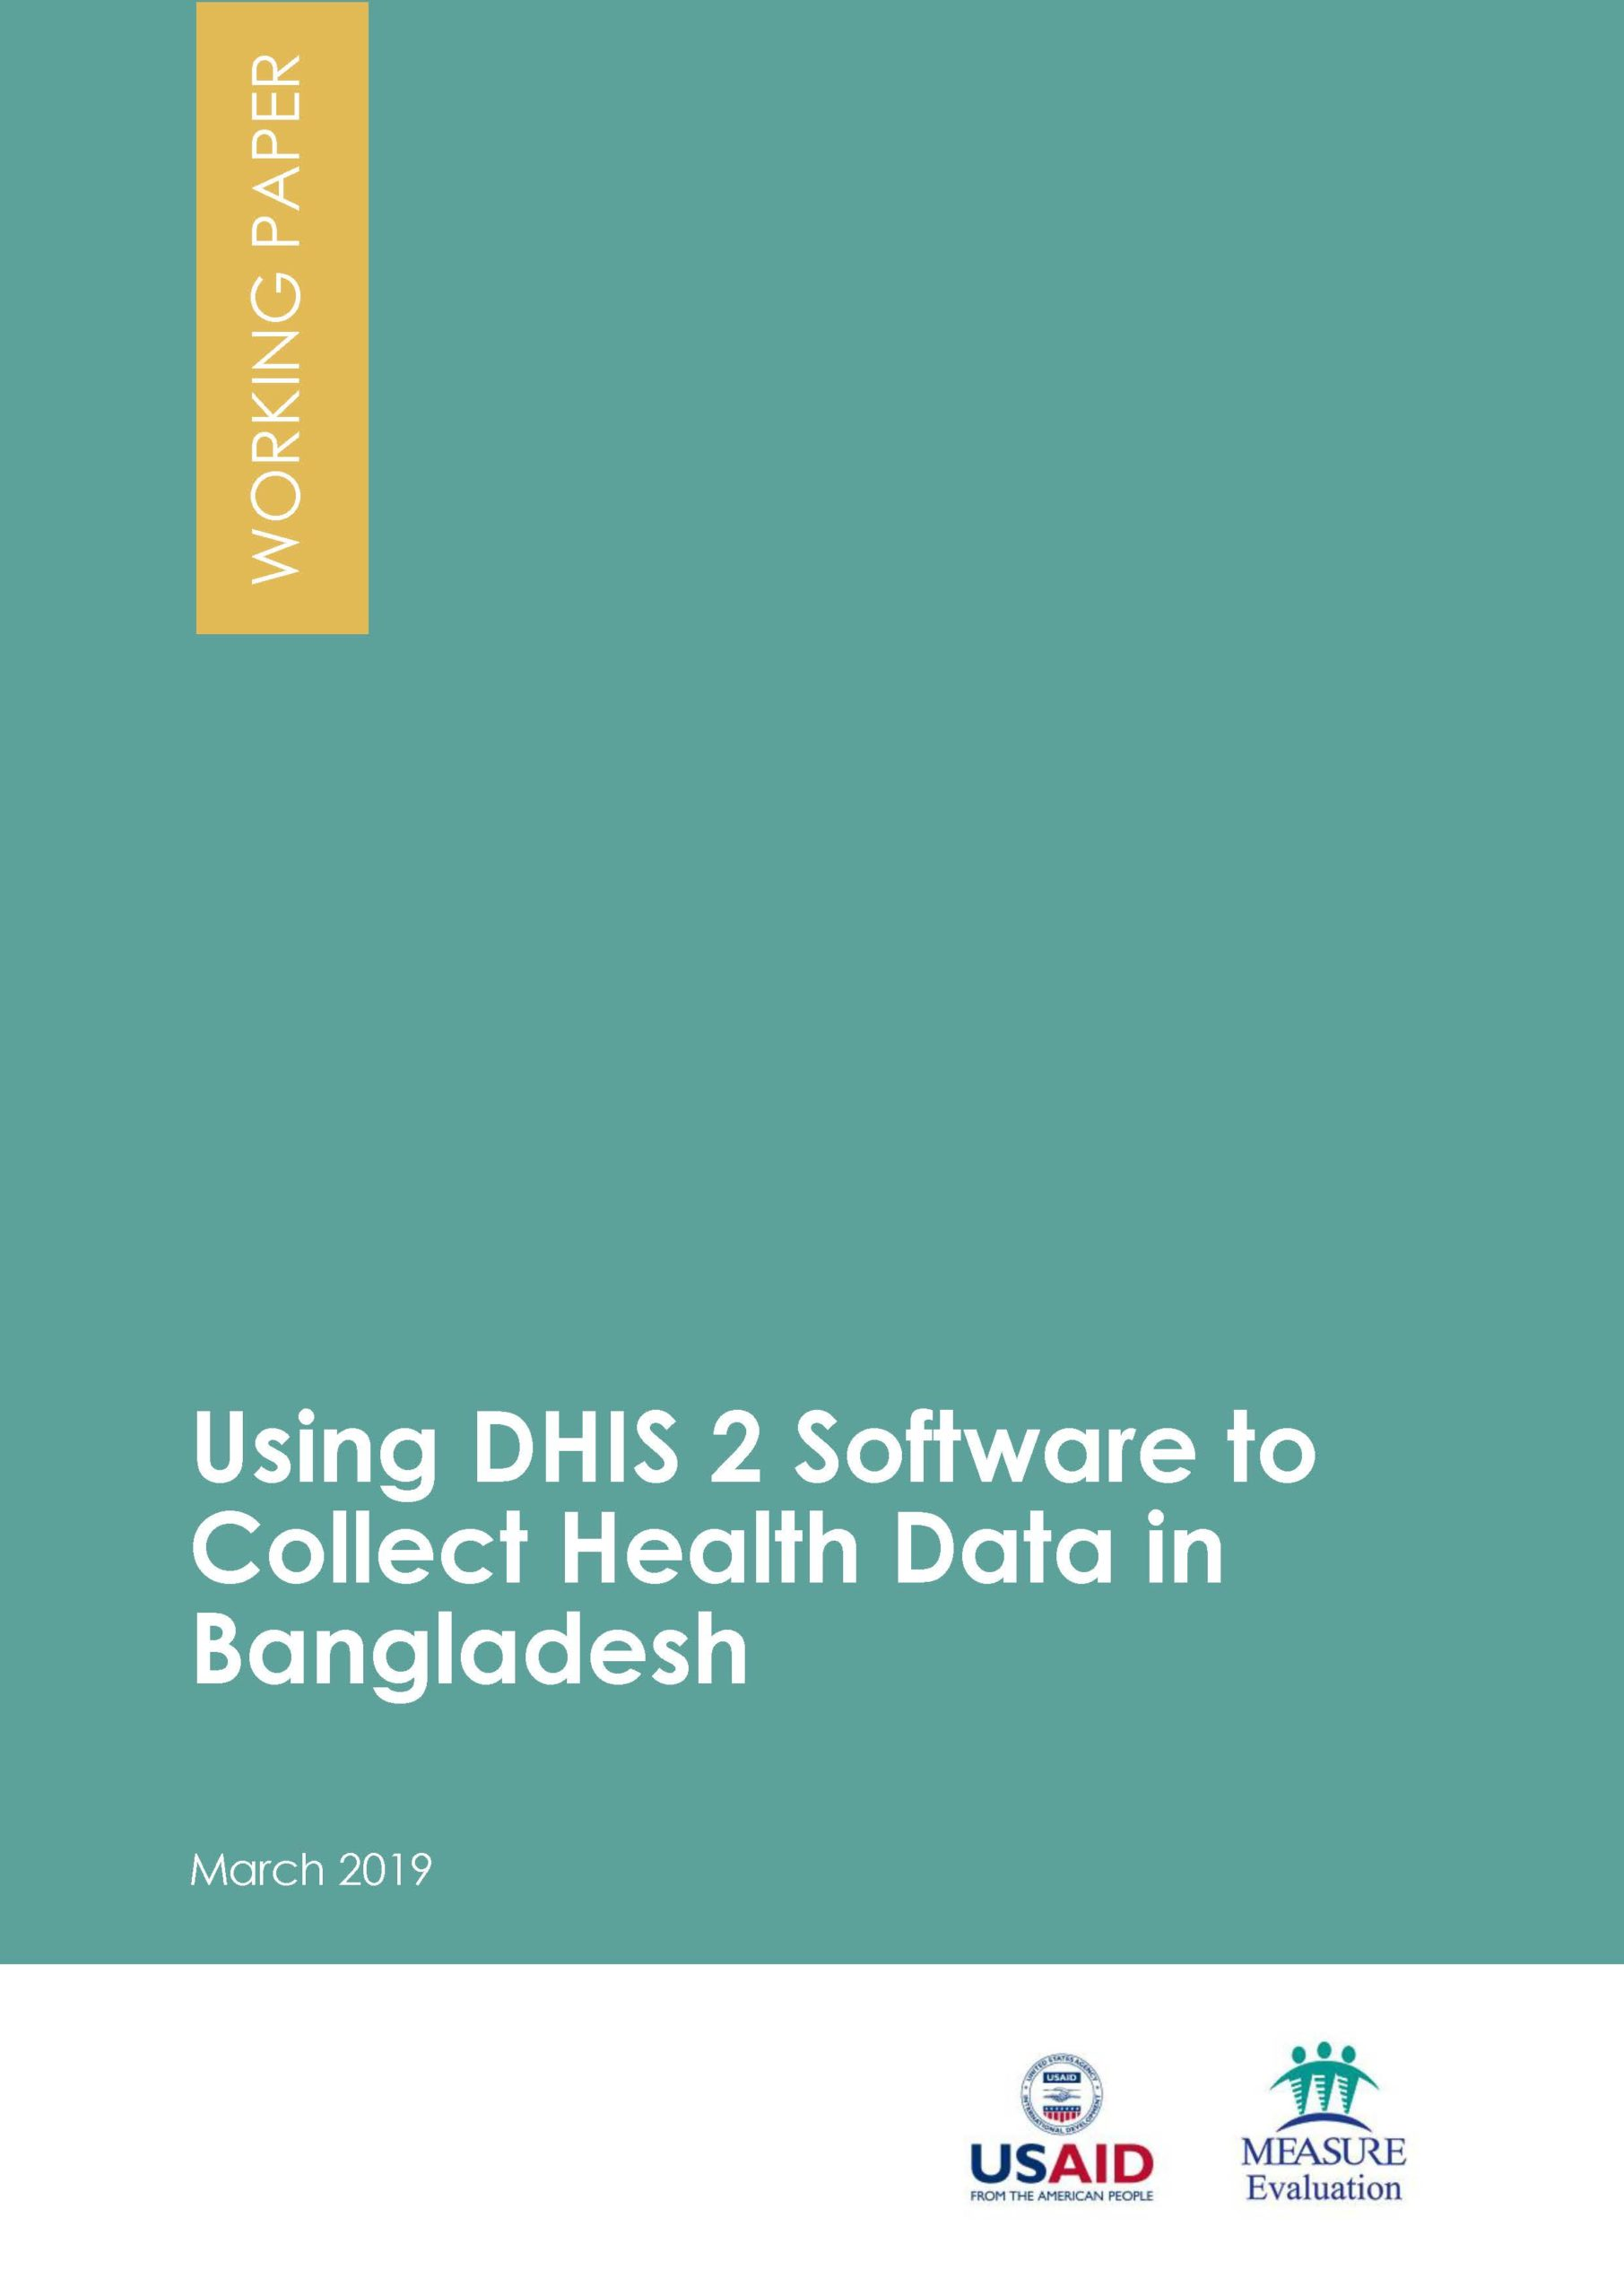 Using DHIS 2 Software to Collect Health Data in Bangladesh